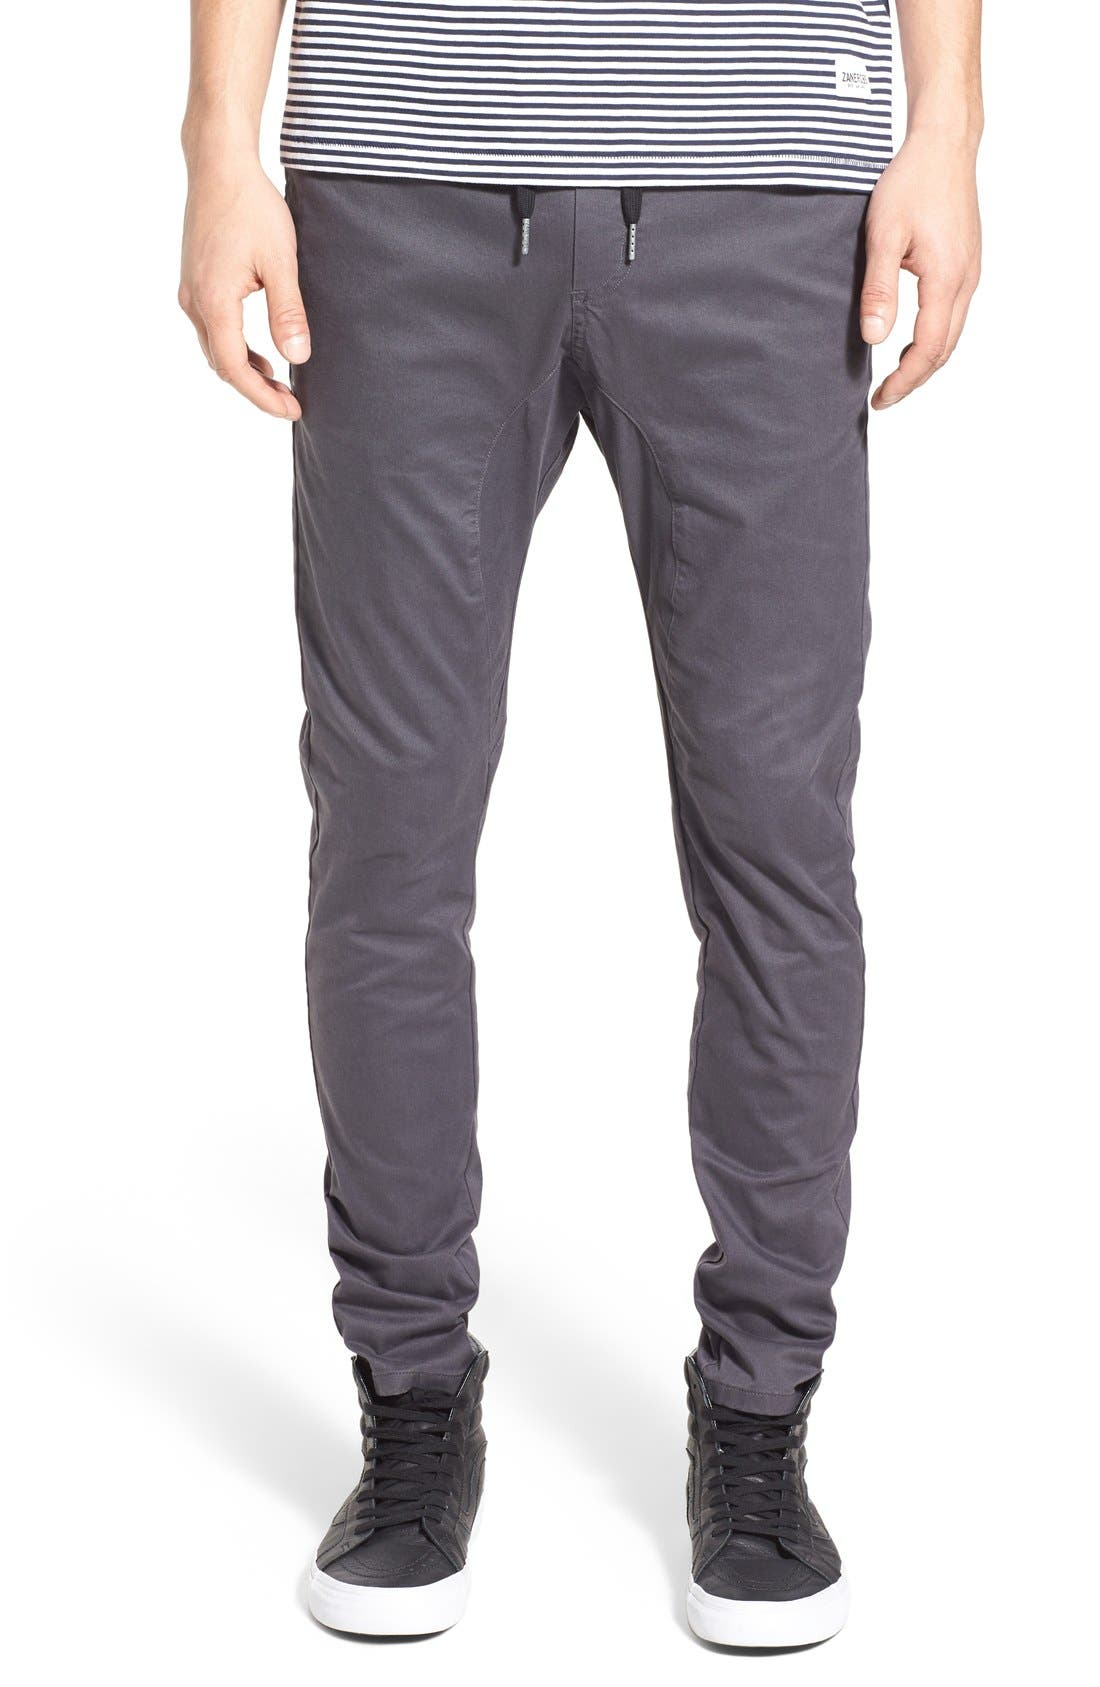 ZANEROBE Salerno Jogger Pants, Main, color, 022